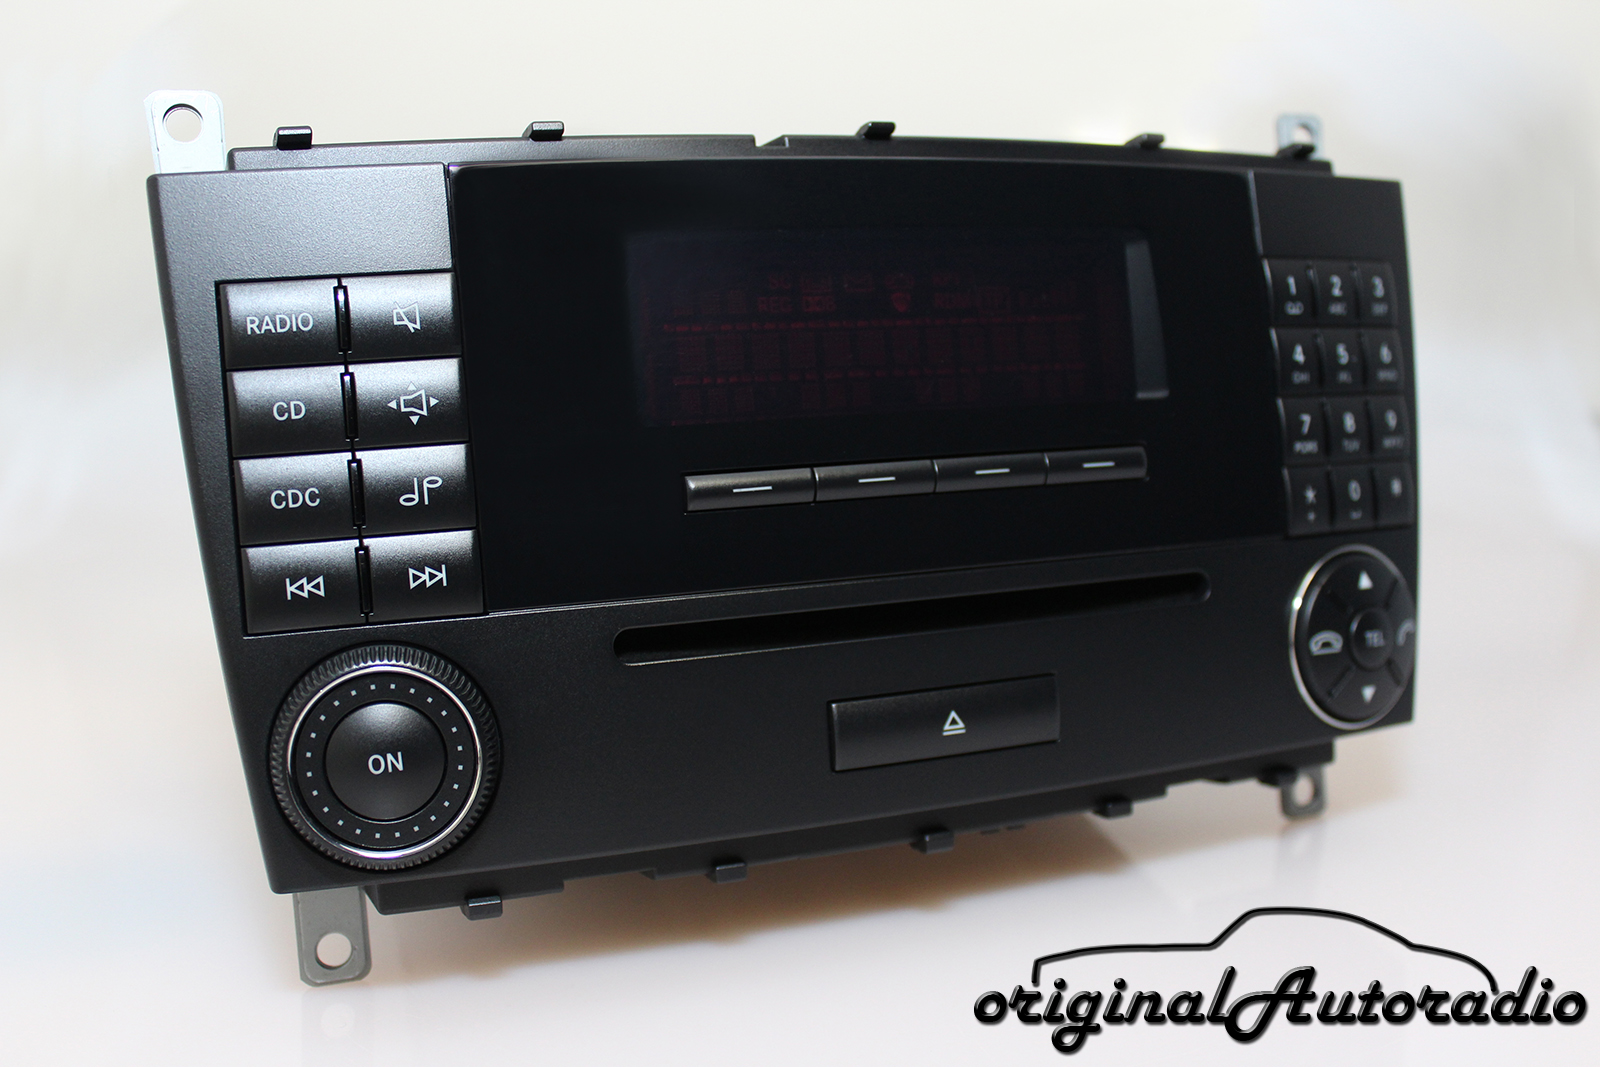 Mercedes Audio 20 Cd Mf2530 R W203 S203 The Alpine Car Stereo Cl203 C Class